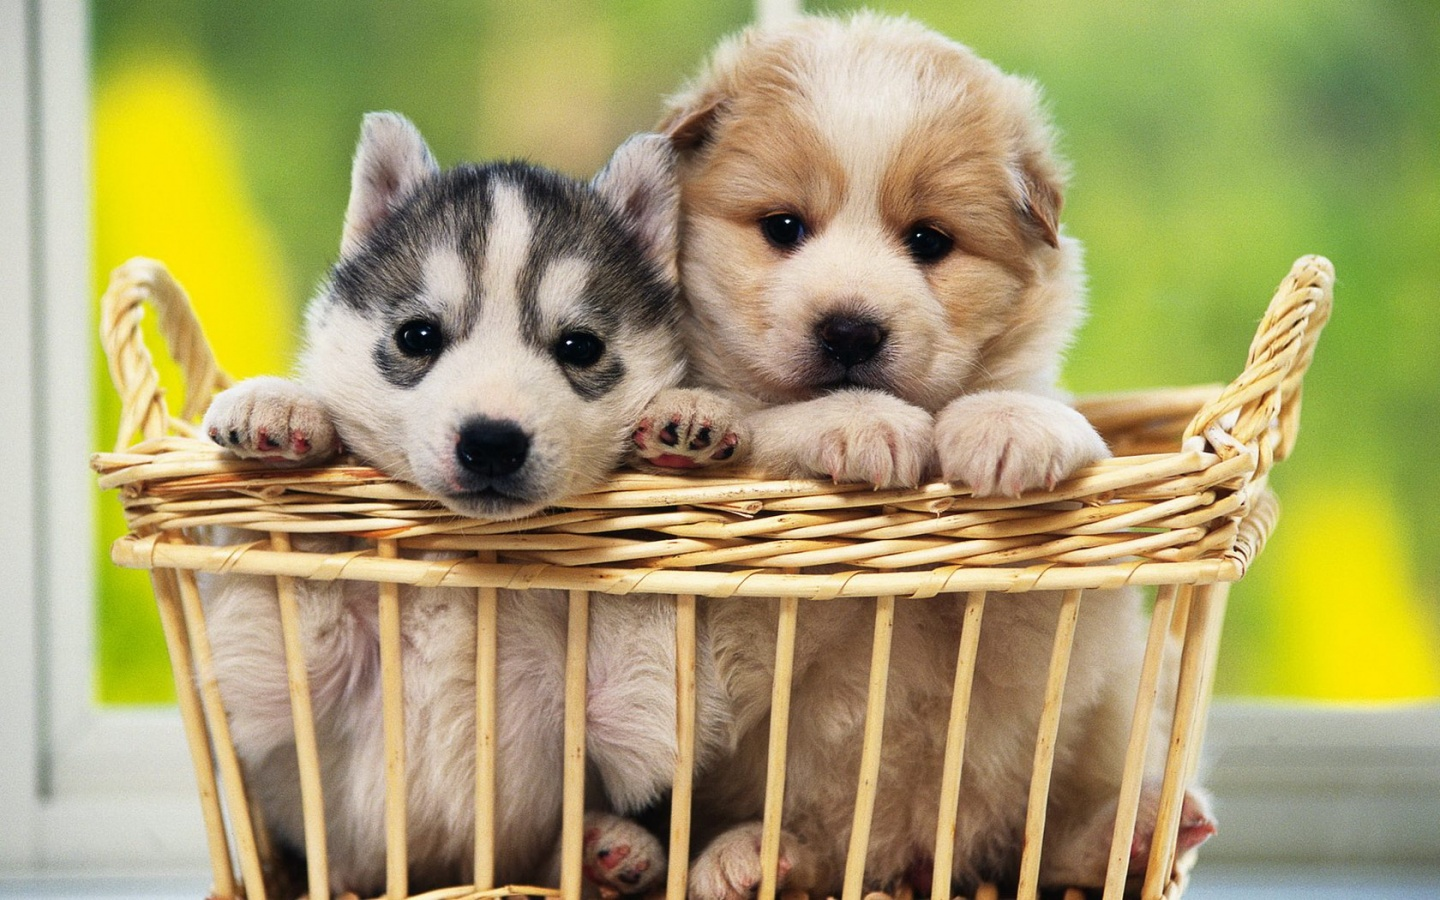 Cute Dogs Wallpapers, Cute Dogs Wallpapers Free Download, Cute Dogs